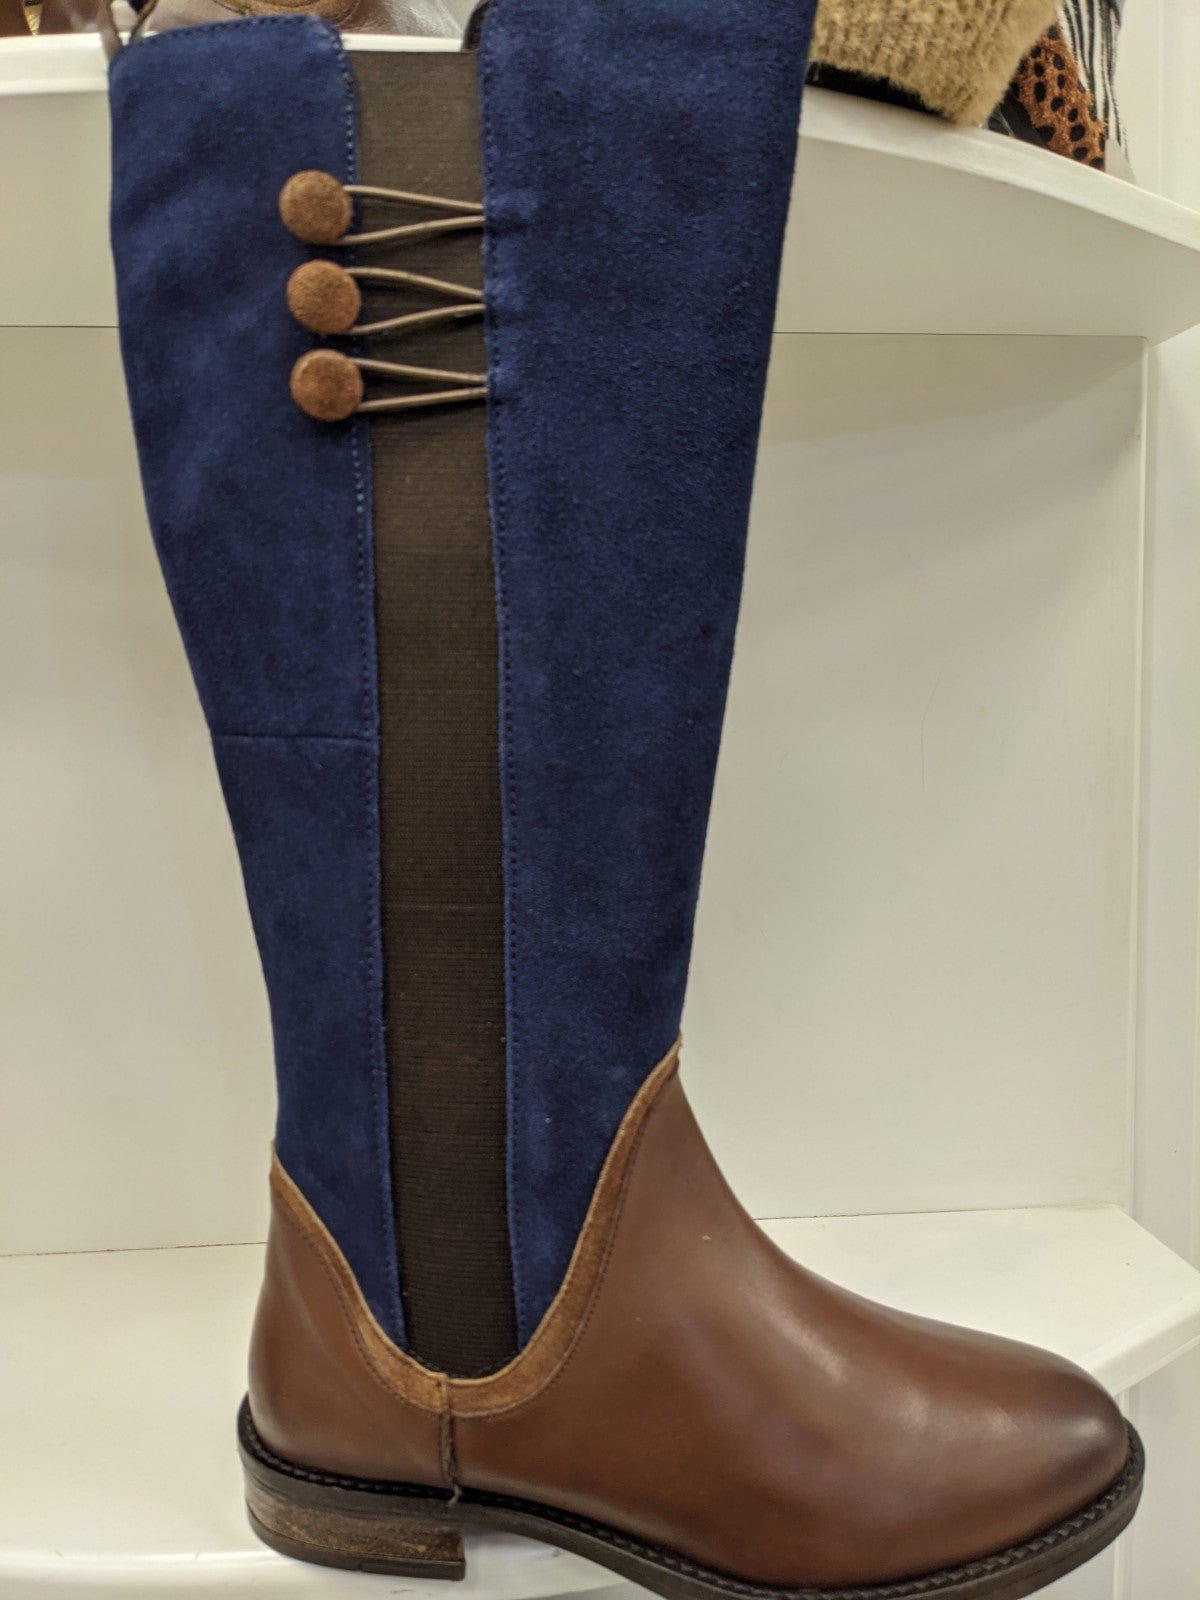 Navy and tan boot